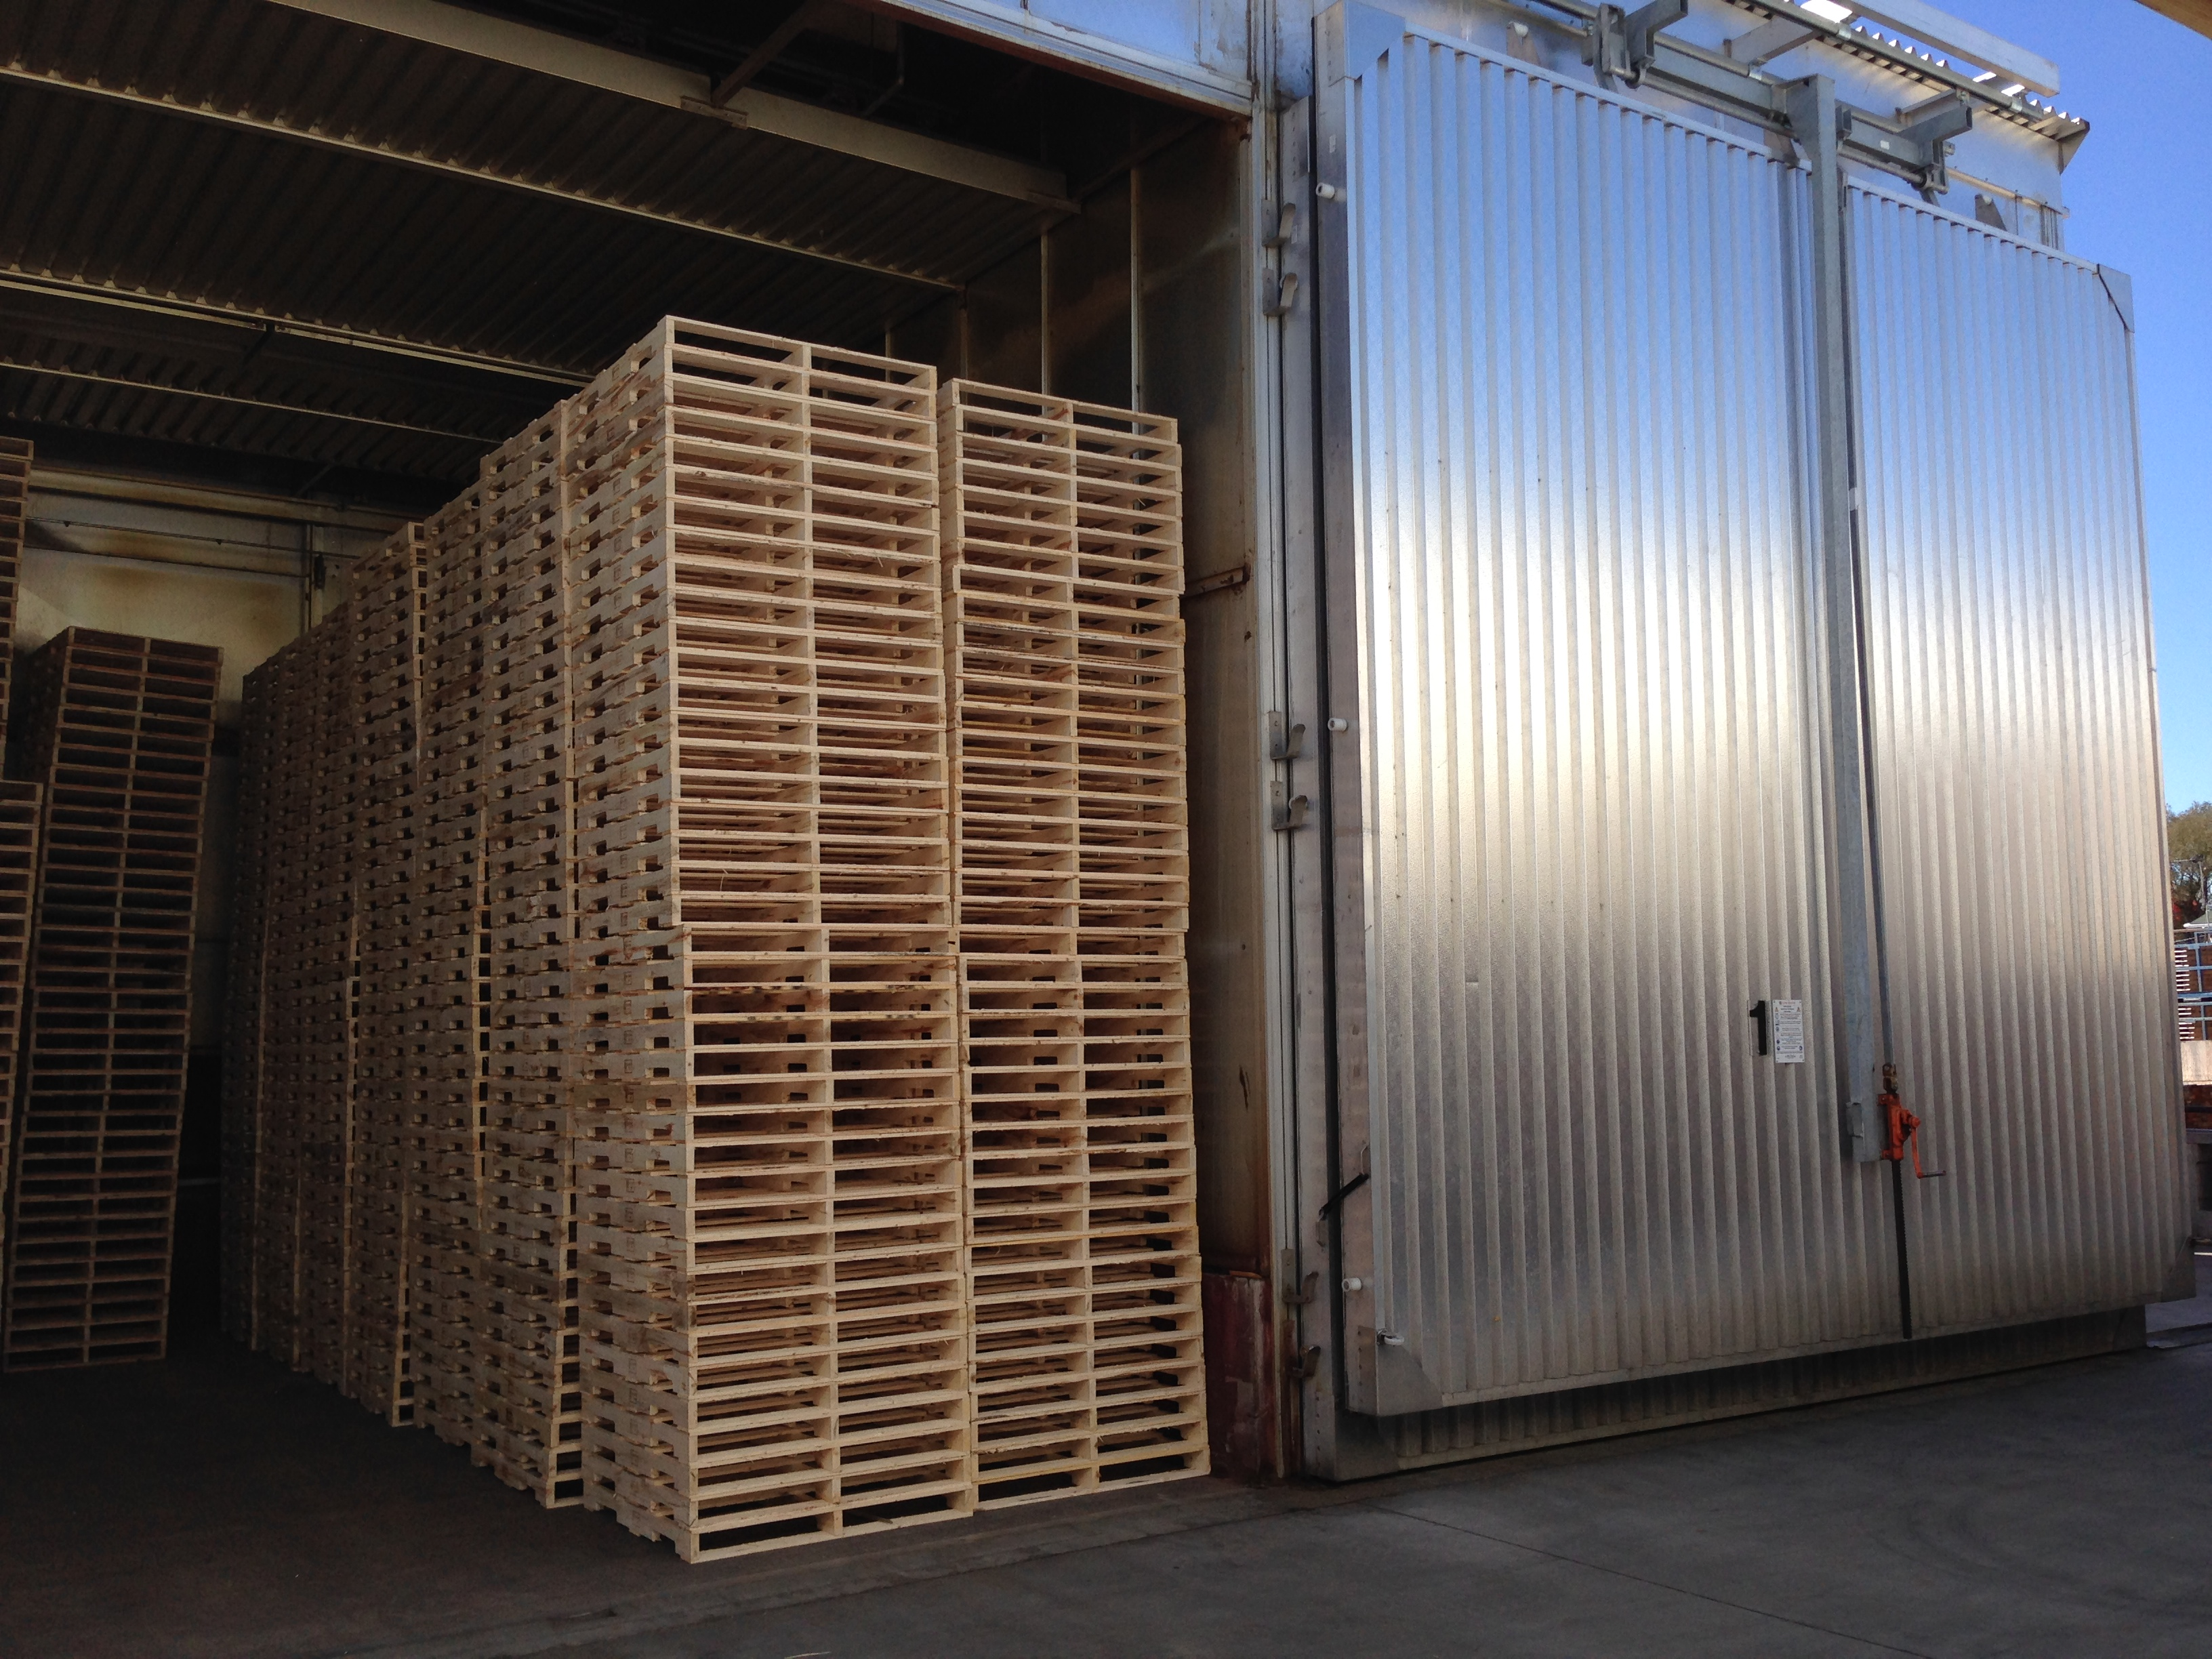 4 Questions to Ask Before Buying Pallets